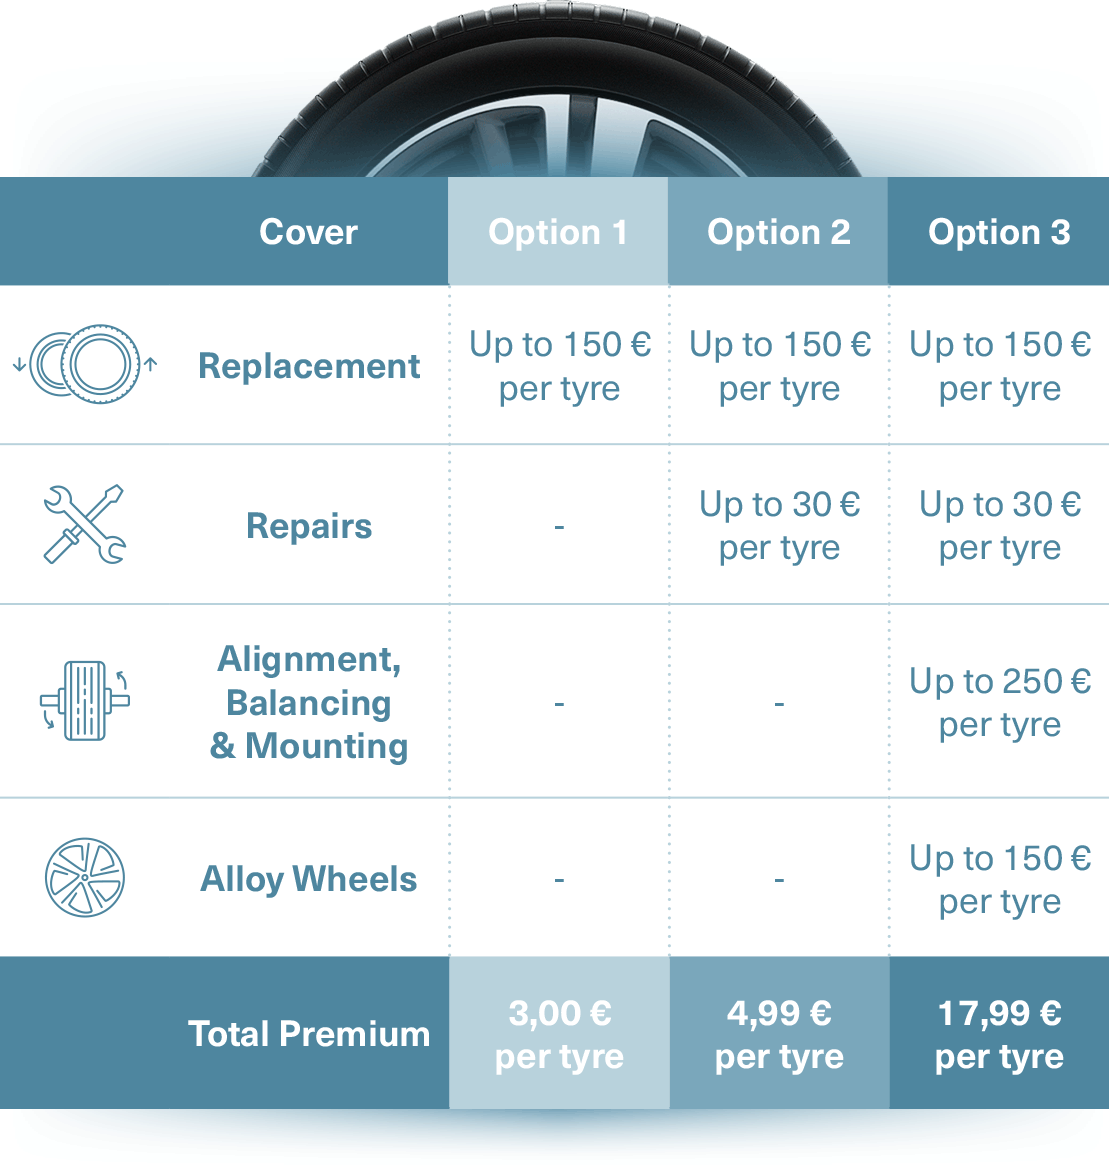 Tyre Insurance Packages